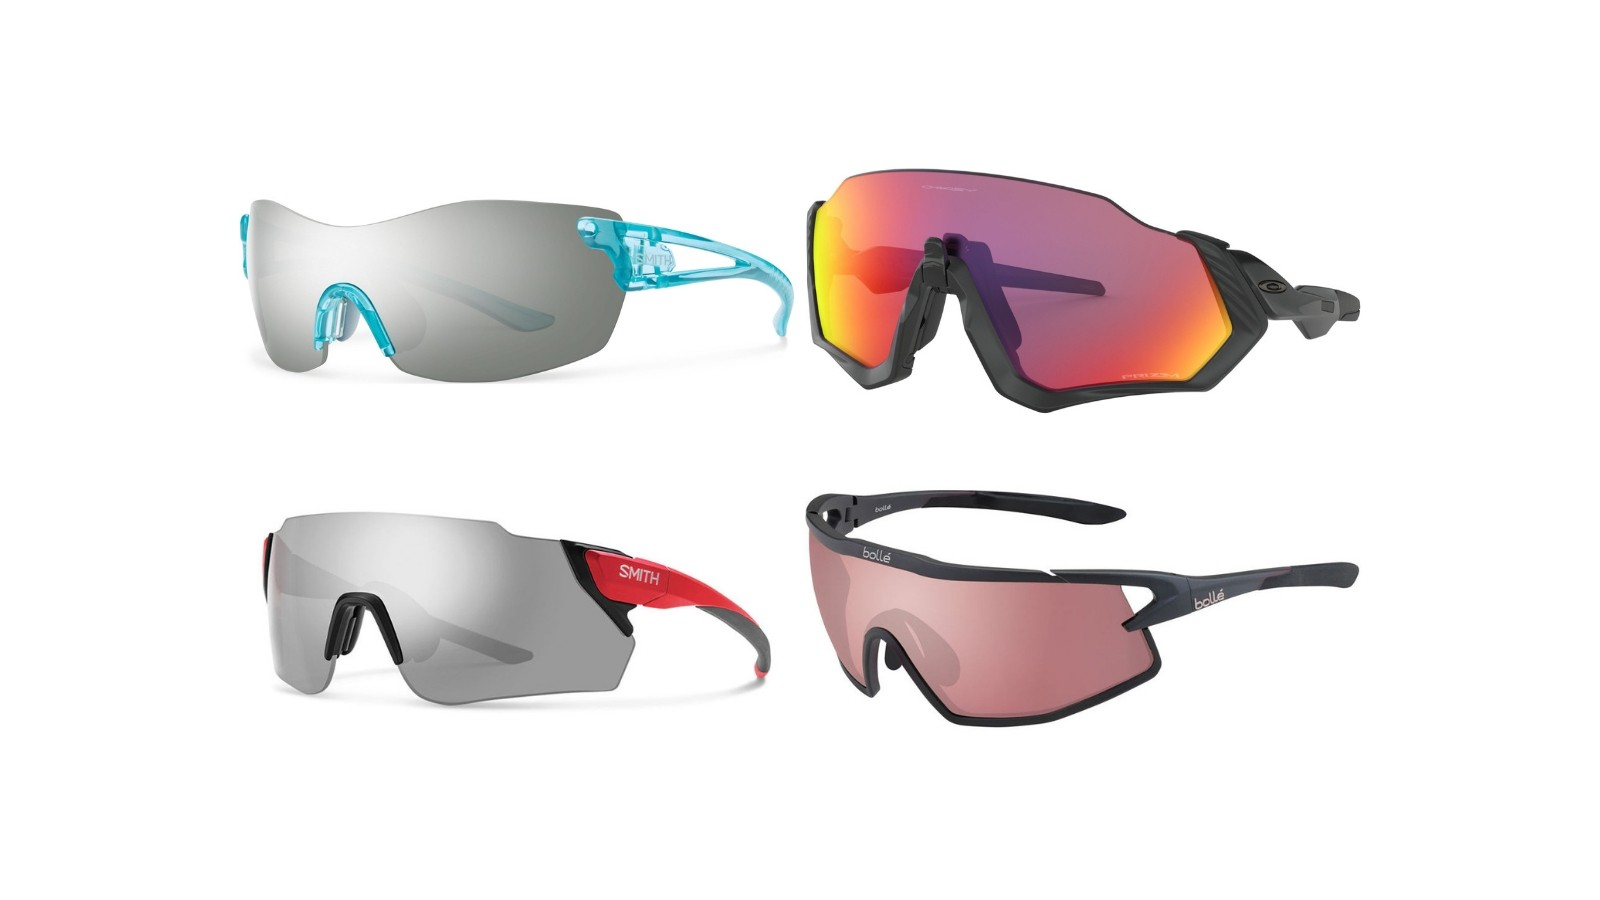 Cycling sunglasses and goggles